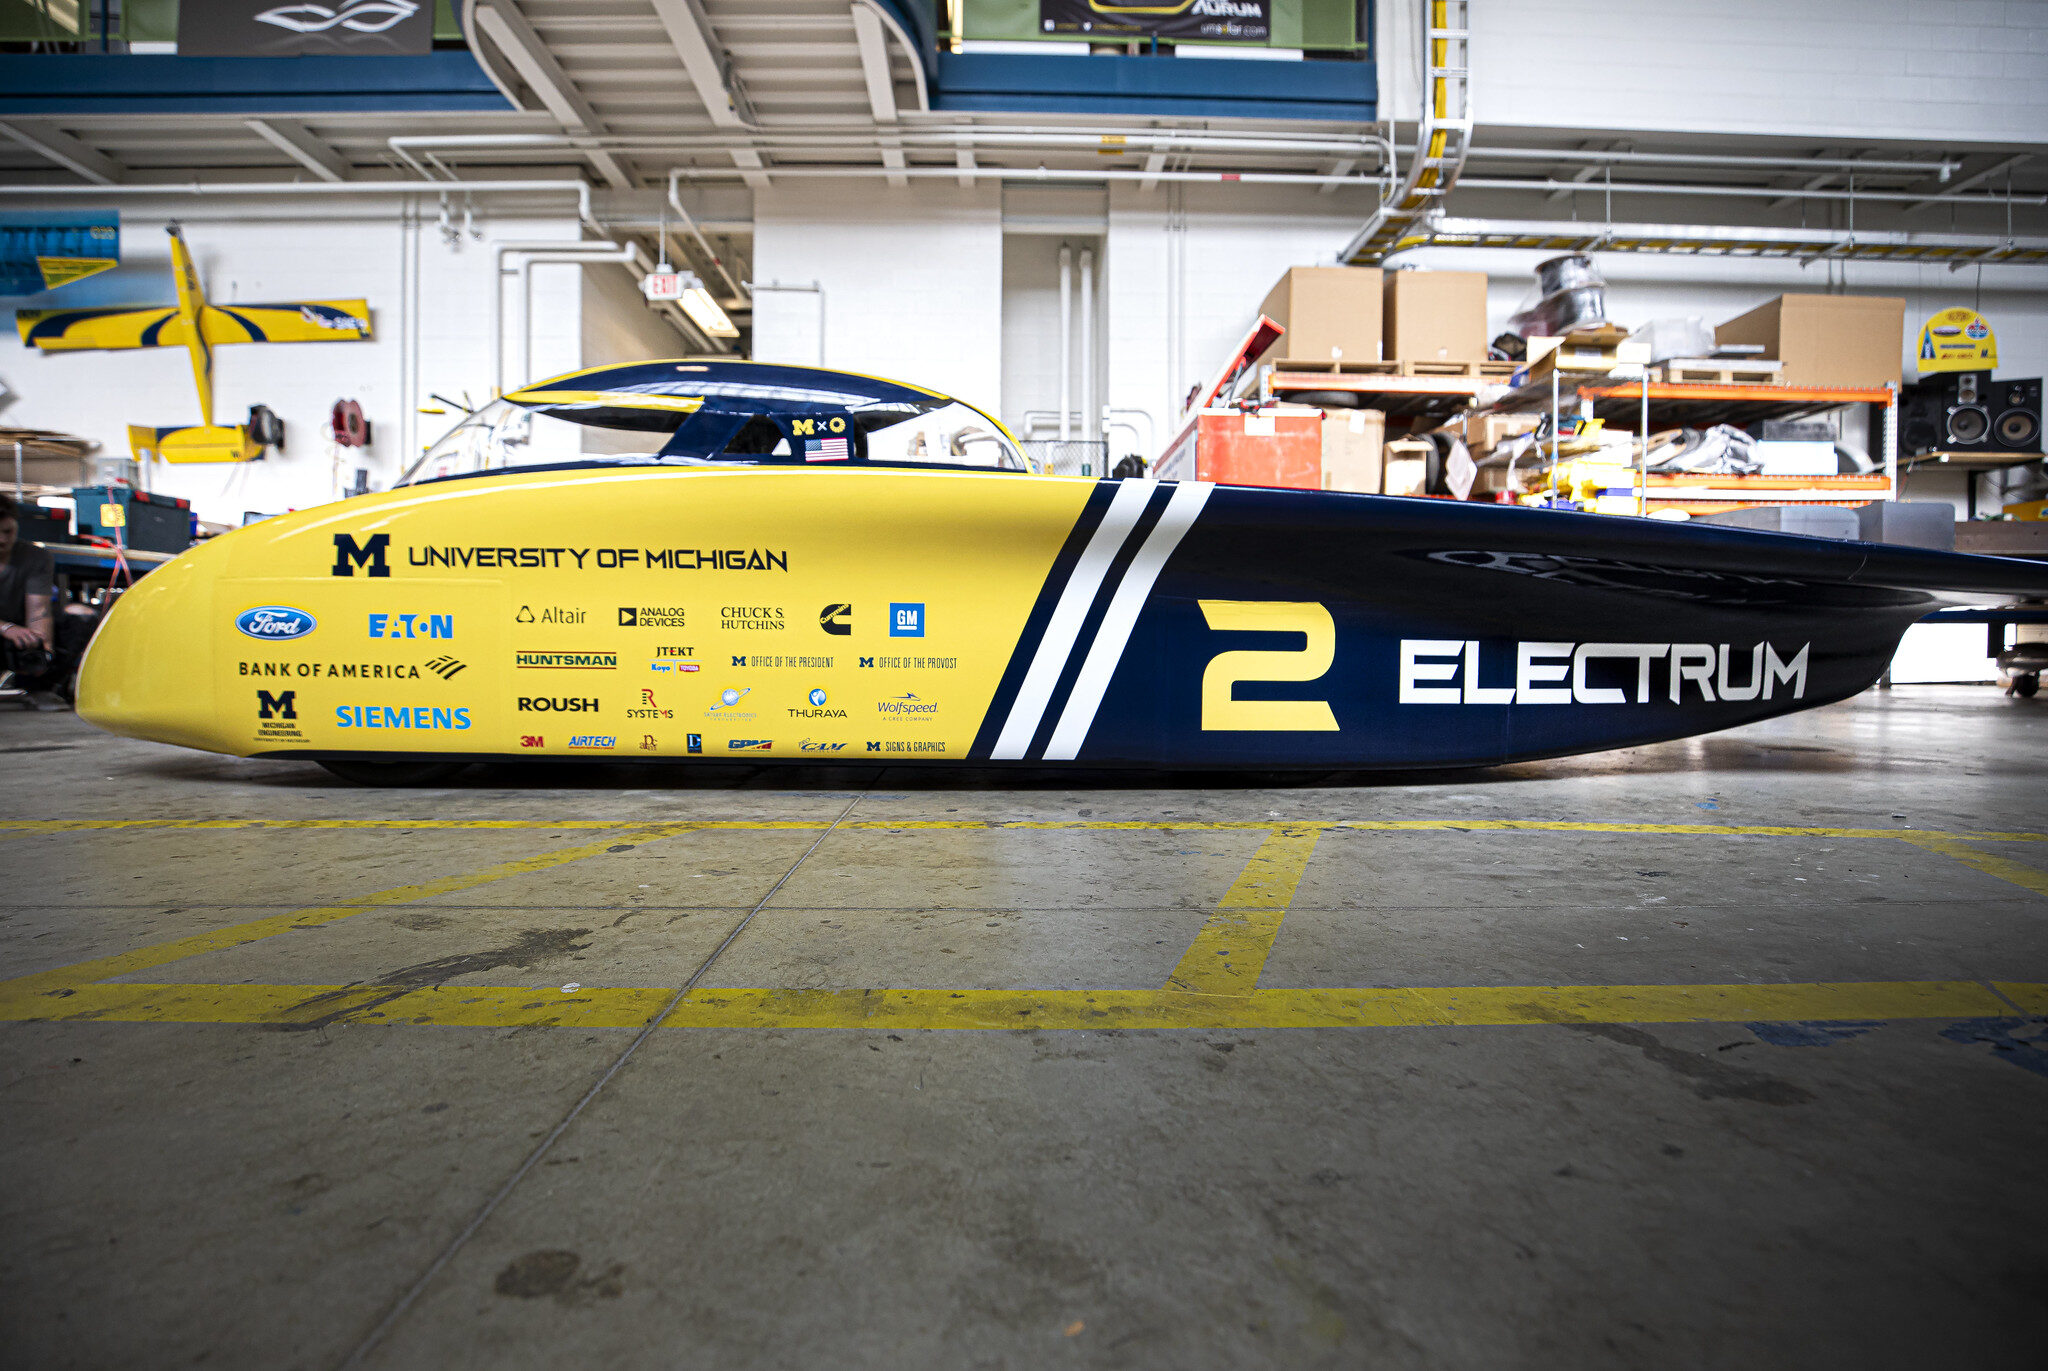 Large solar car parked in garage.